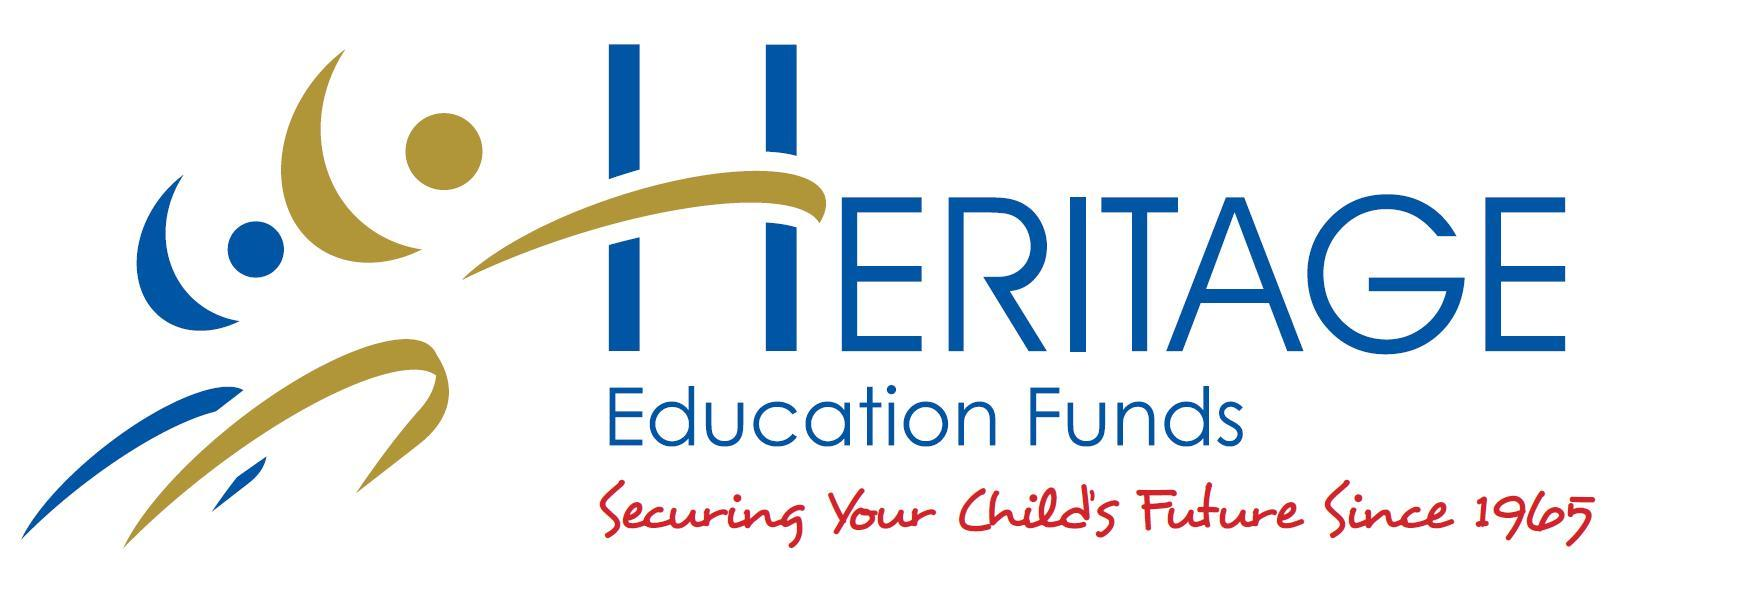 Heritage Education Funds Caroline Rhea